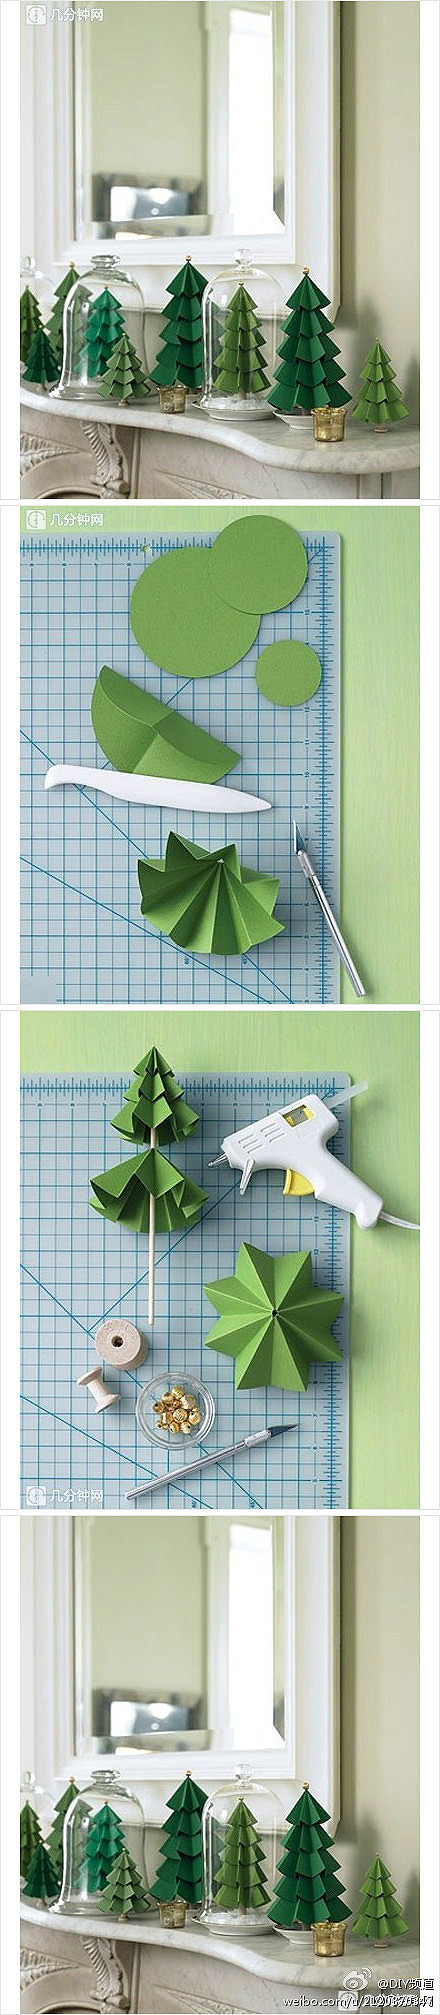 How to make paper craft Christmas trees step by step DIY tutorial instructions